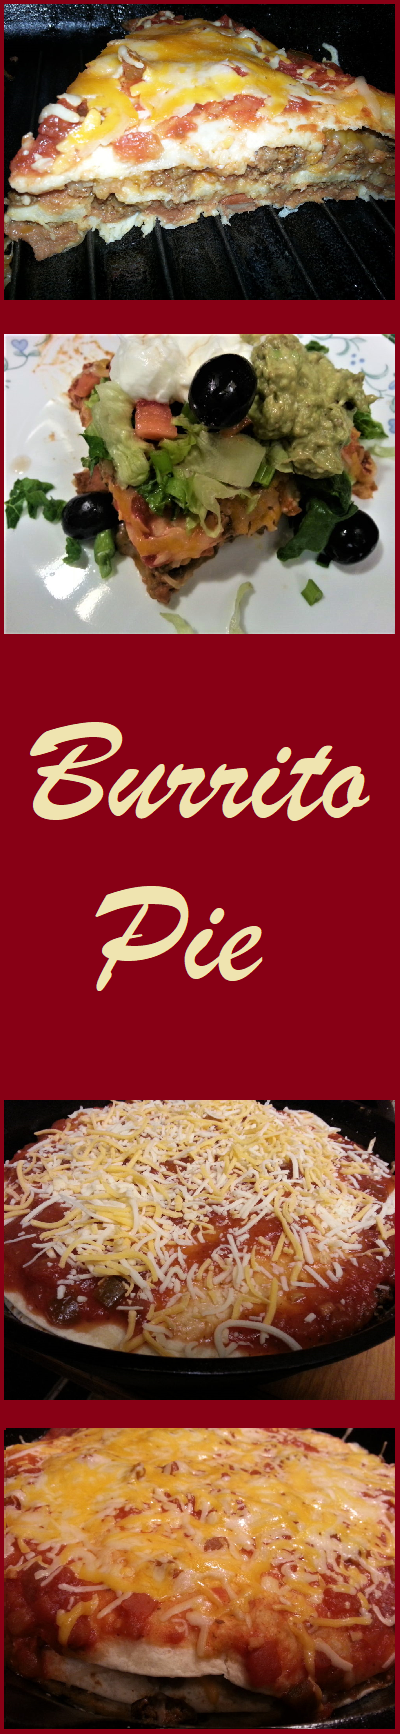 Burrito Pie--Feed 4 to 6 people using only 3 tortillas.